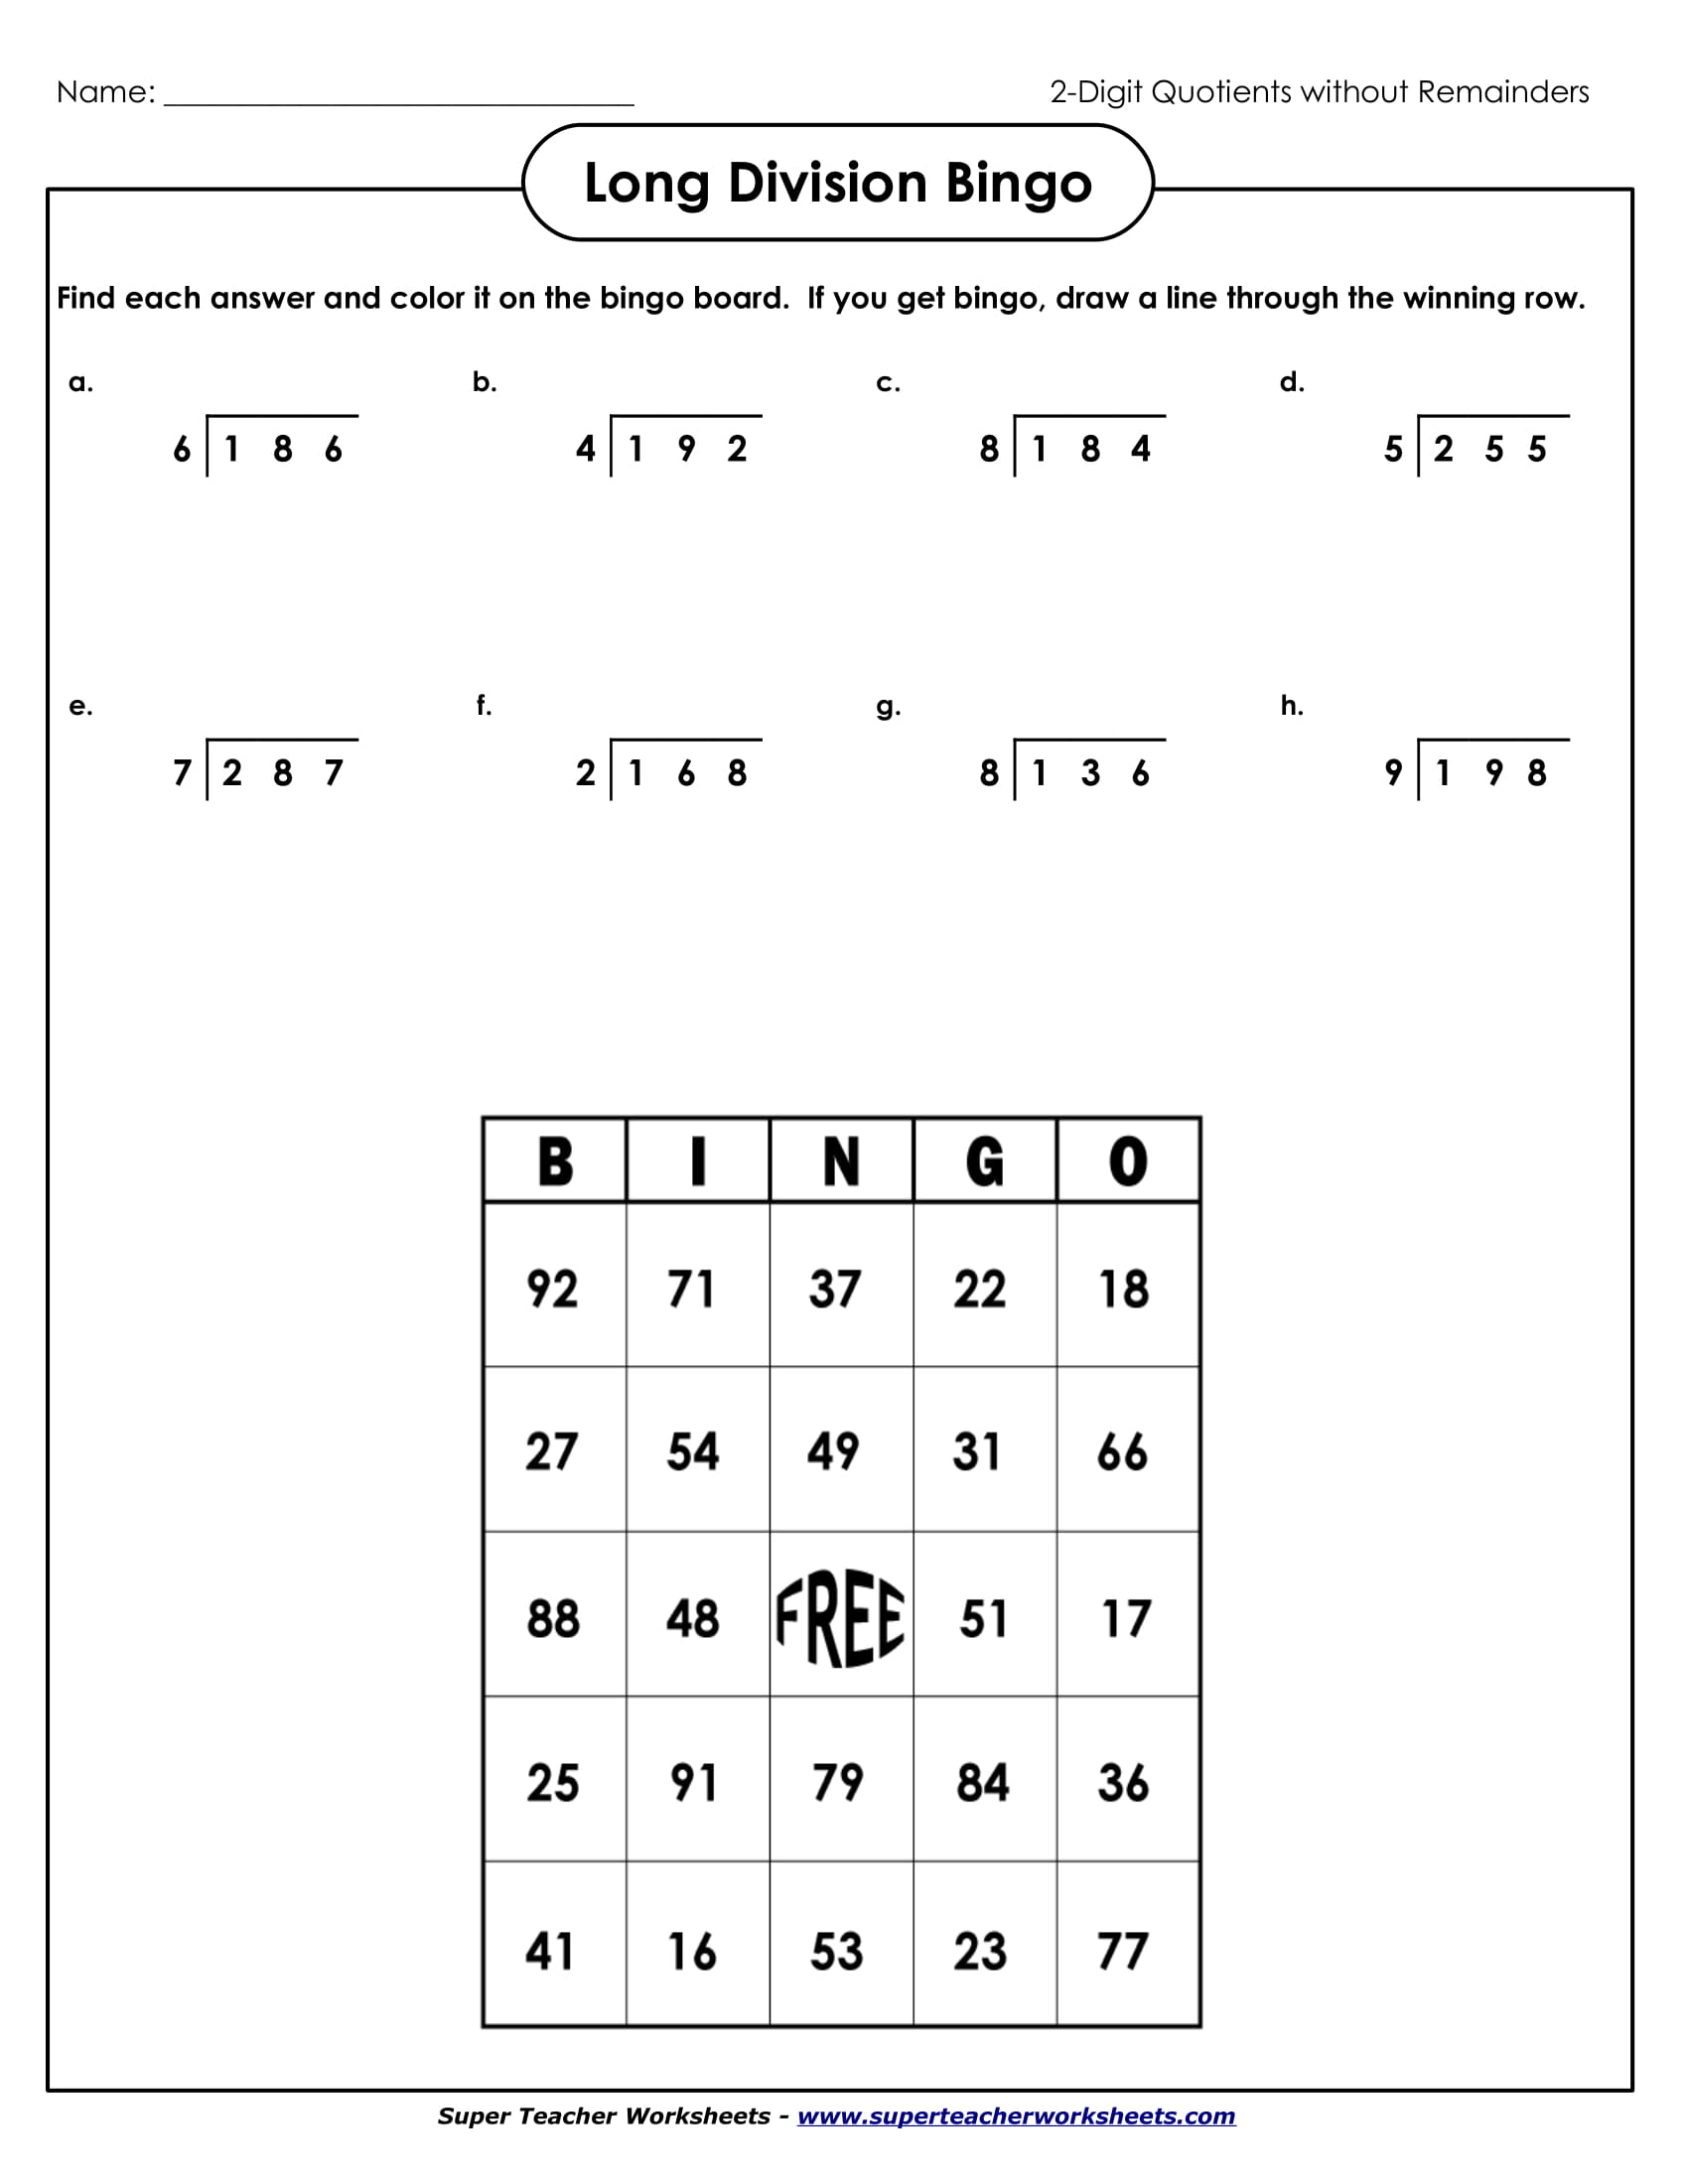 long division bingo sample worksheet